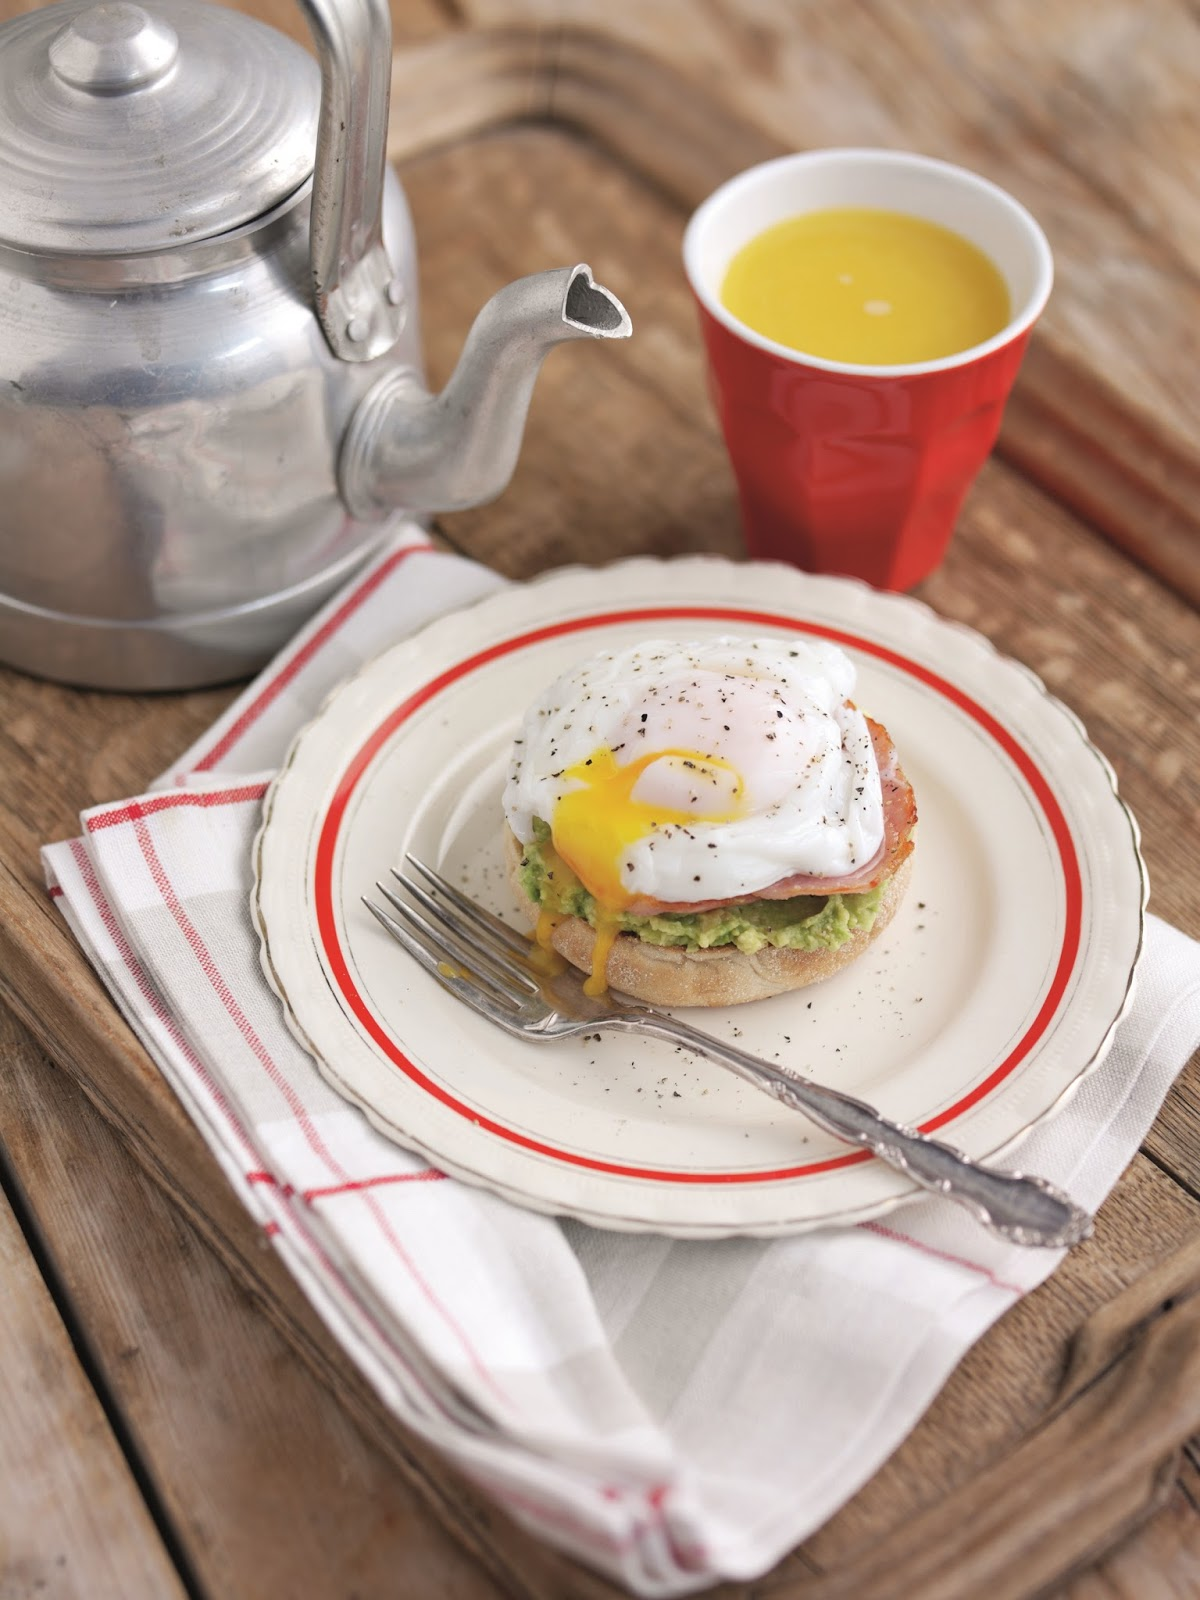 Avocado Eggs Benedict: A Protein-packed Breakfast